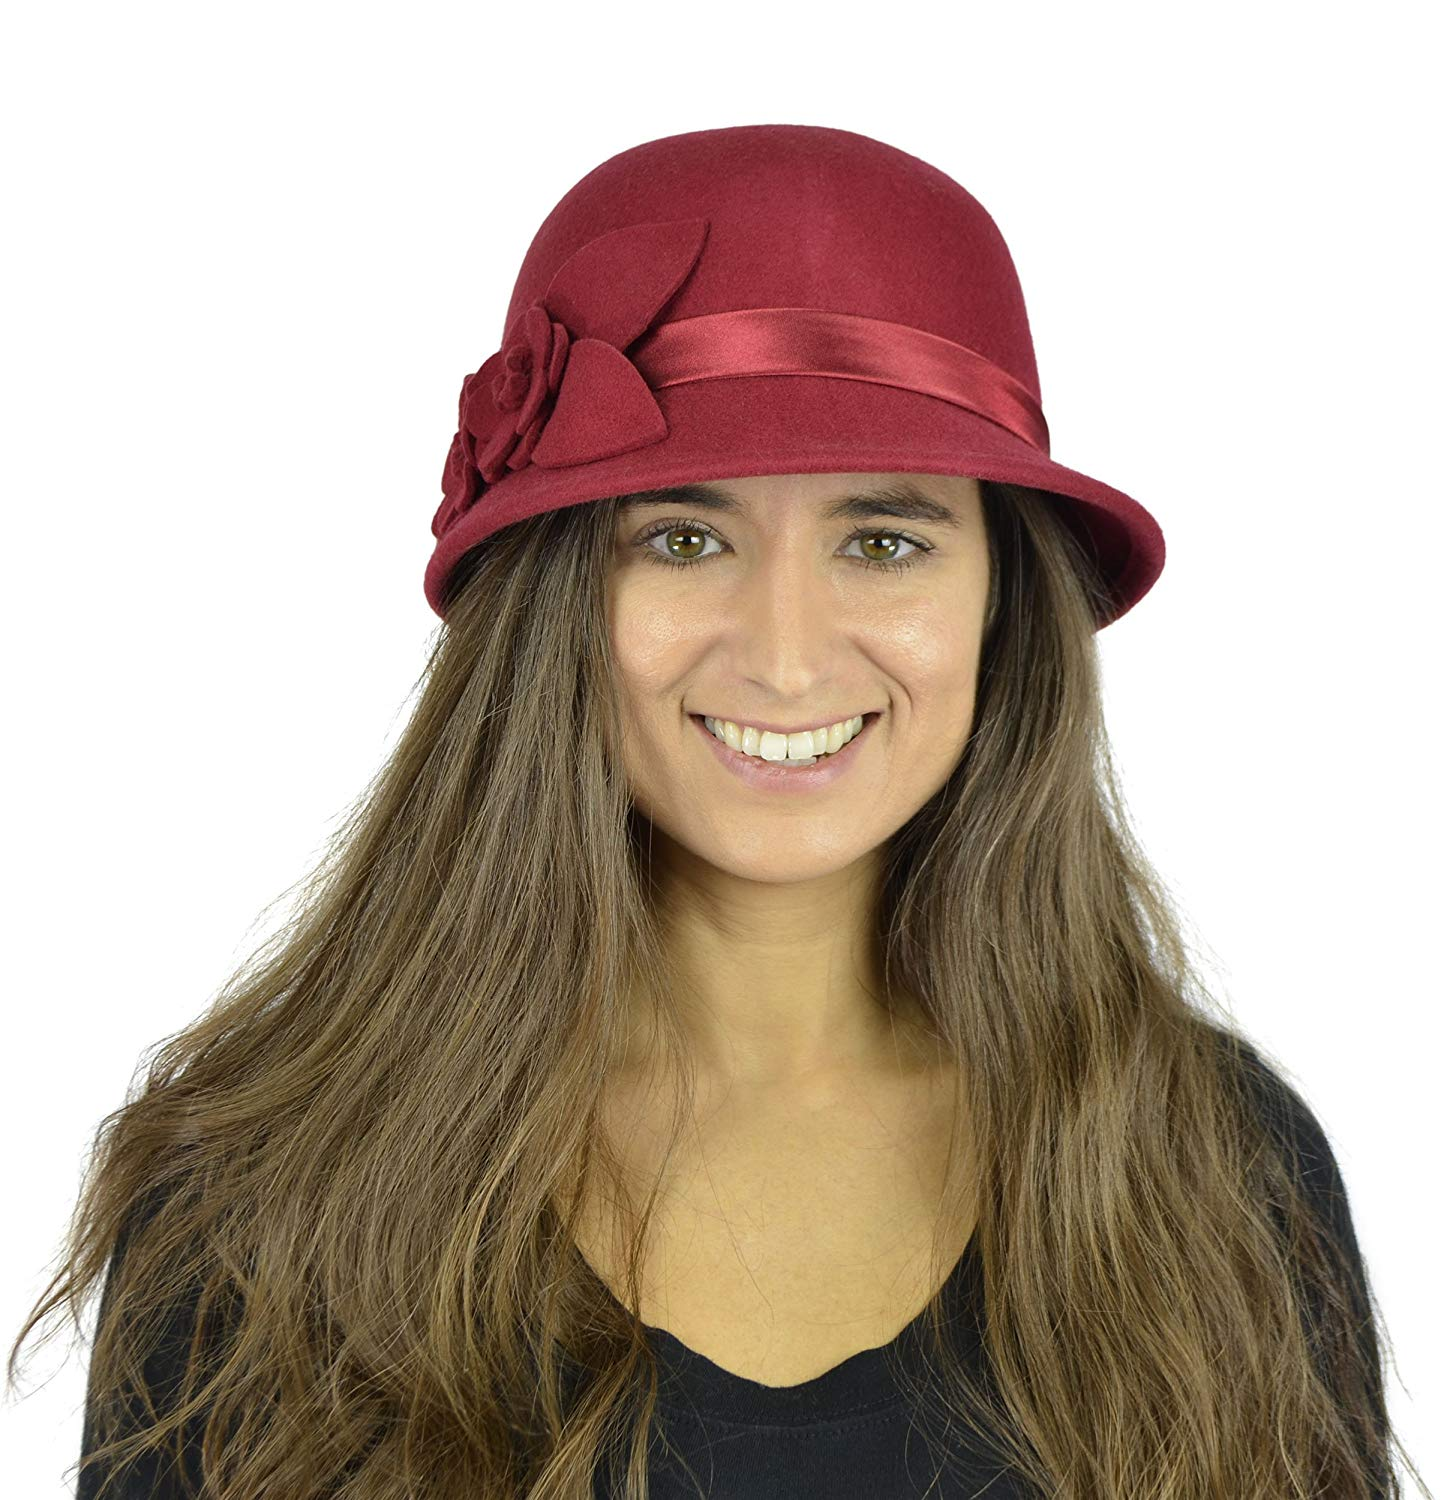 e4a6ff3c05f Get Quotations · Belle Donne Women s Pure Wool Cloche Hats - Many Colors